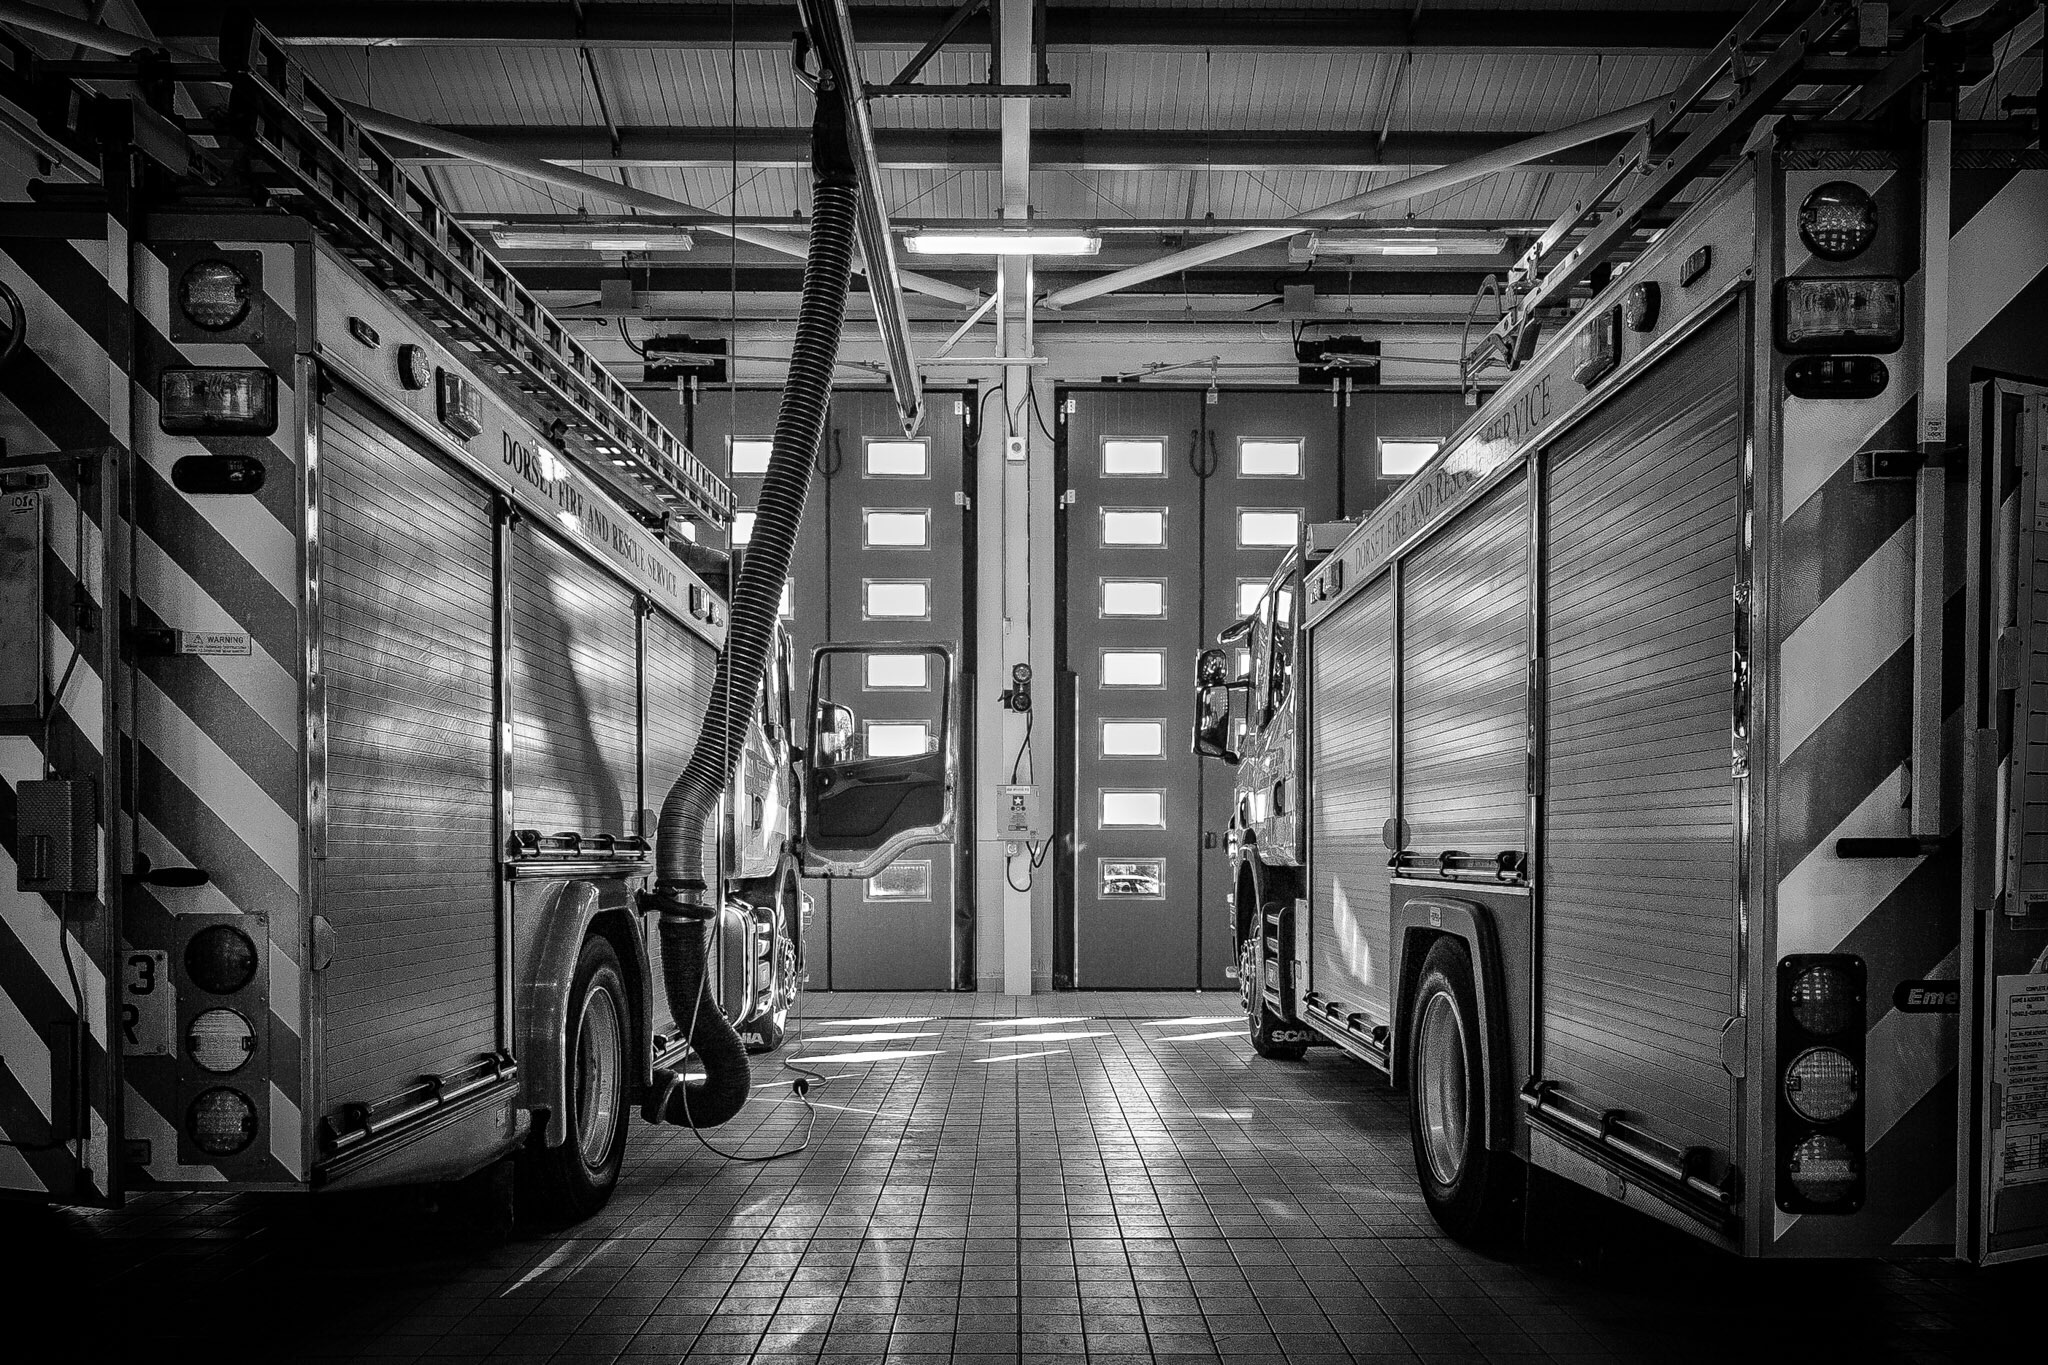 Dorchester Fire Station, Dorset - architectural photography by Rick McEvoy